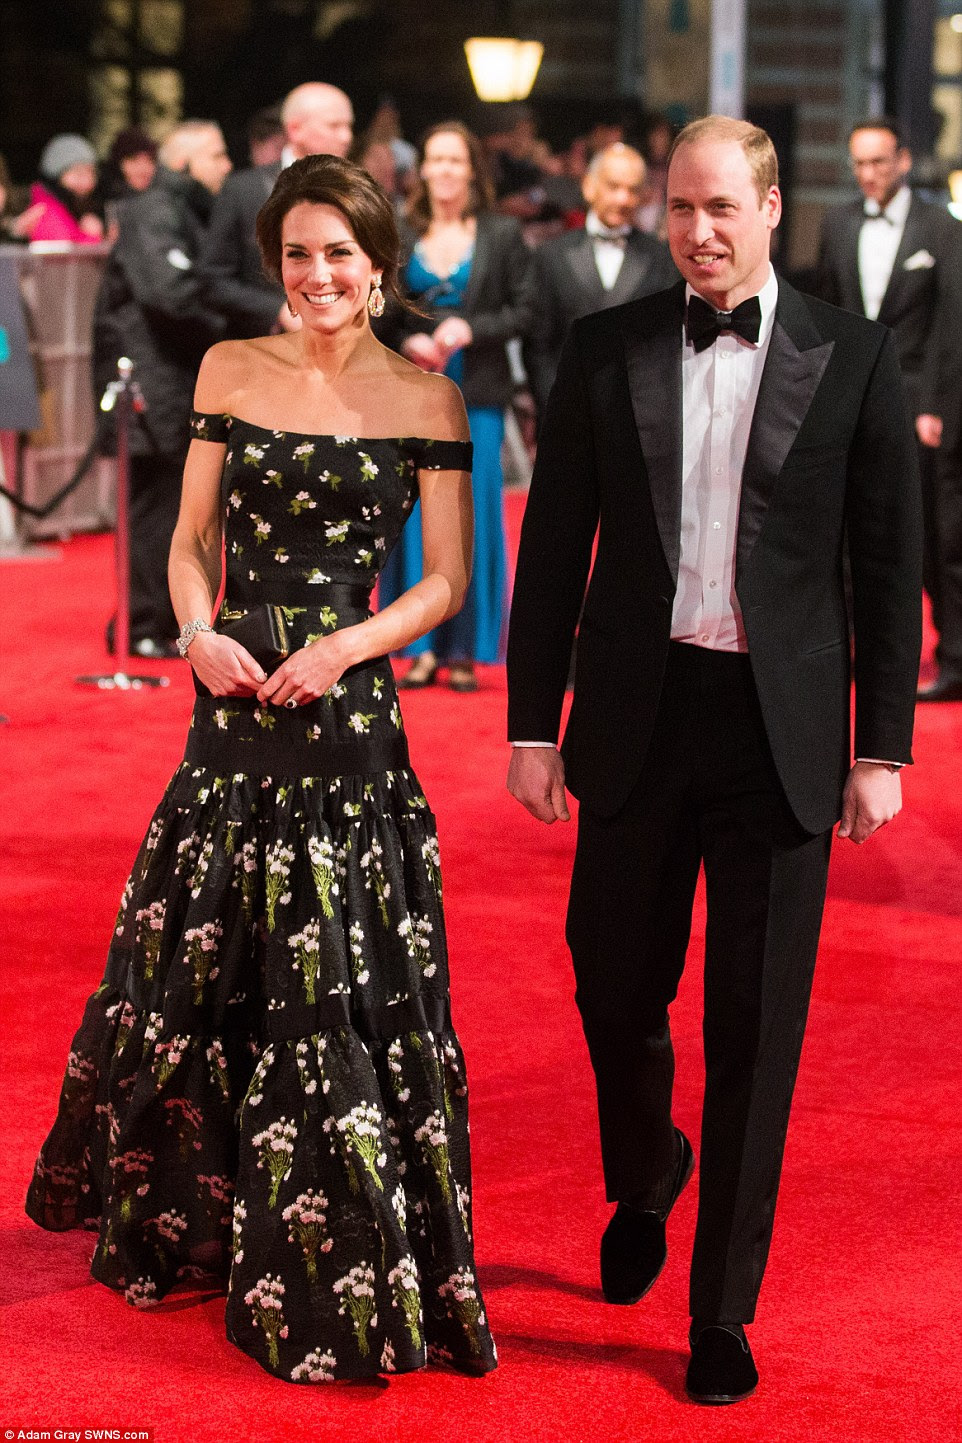 Last to arrive: The Duke and Duchess of Cambridge were the special guests of Sunday night's BAFTA awards at the Royal Albert Hall in London